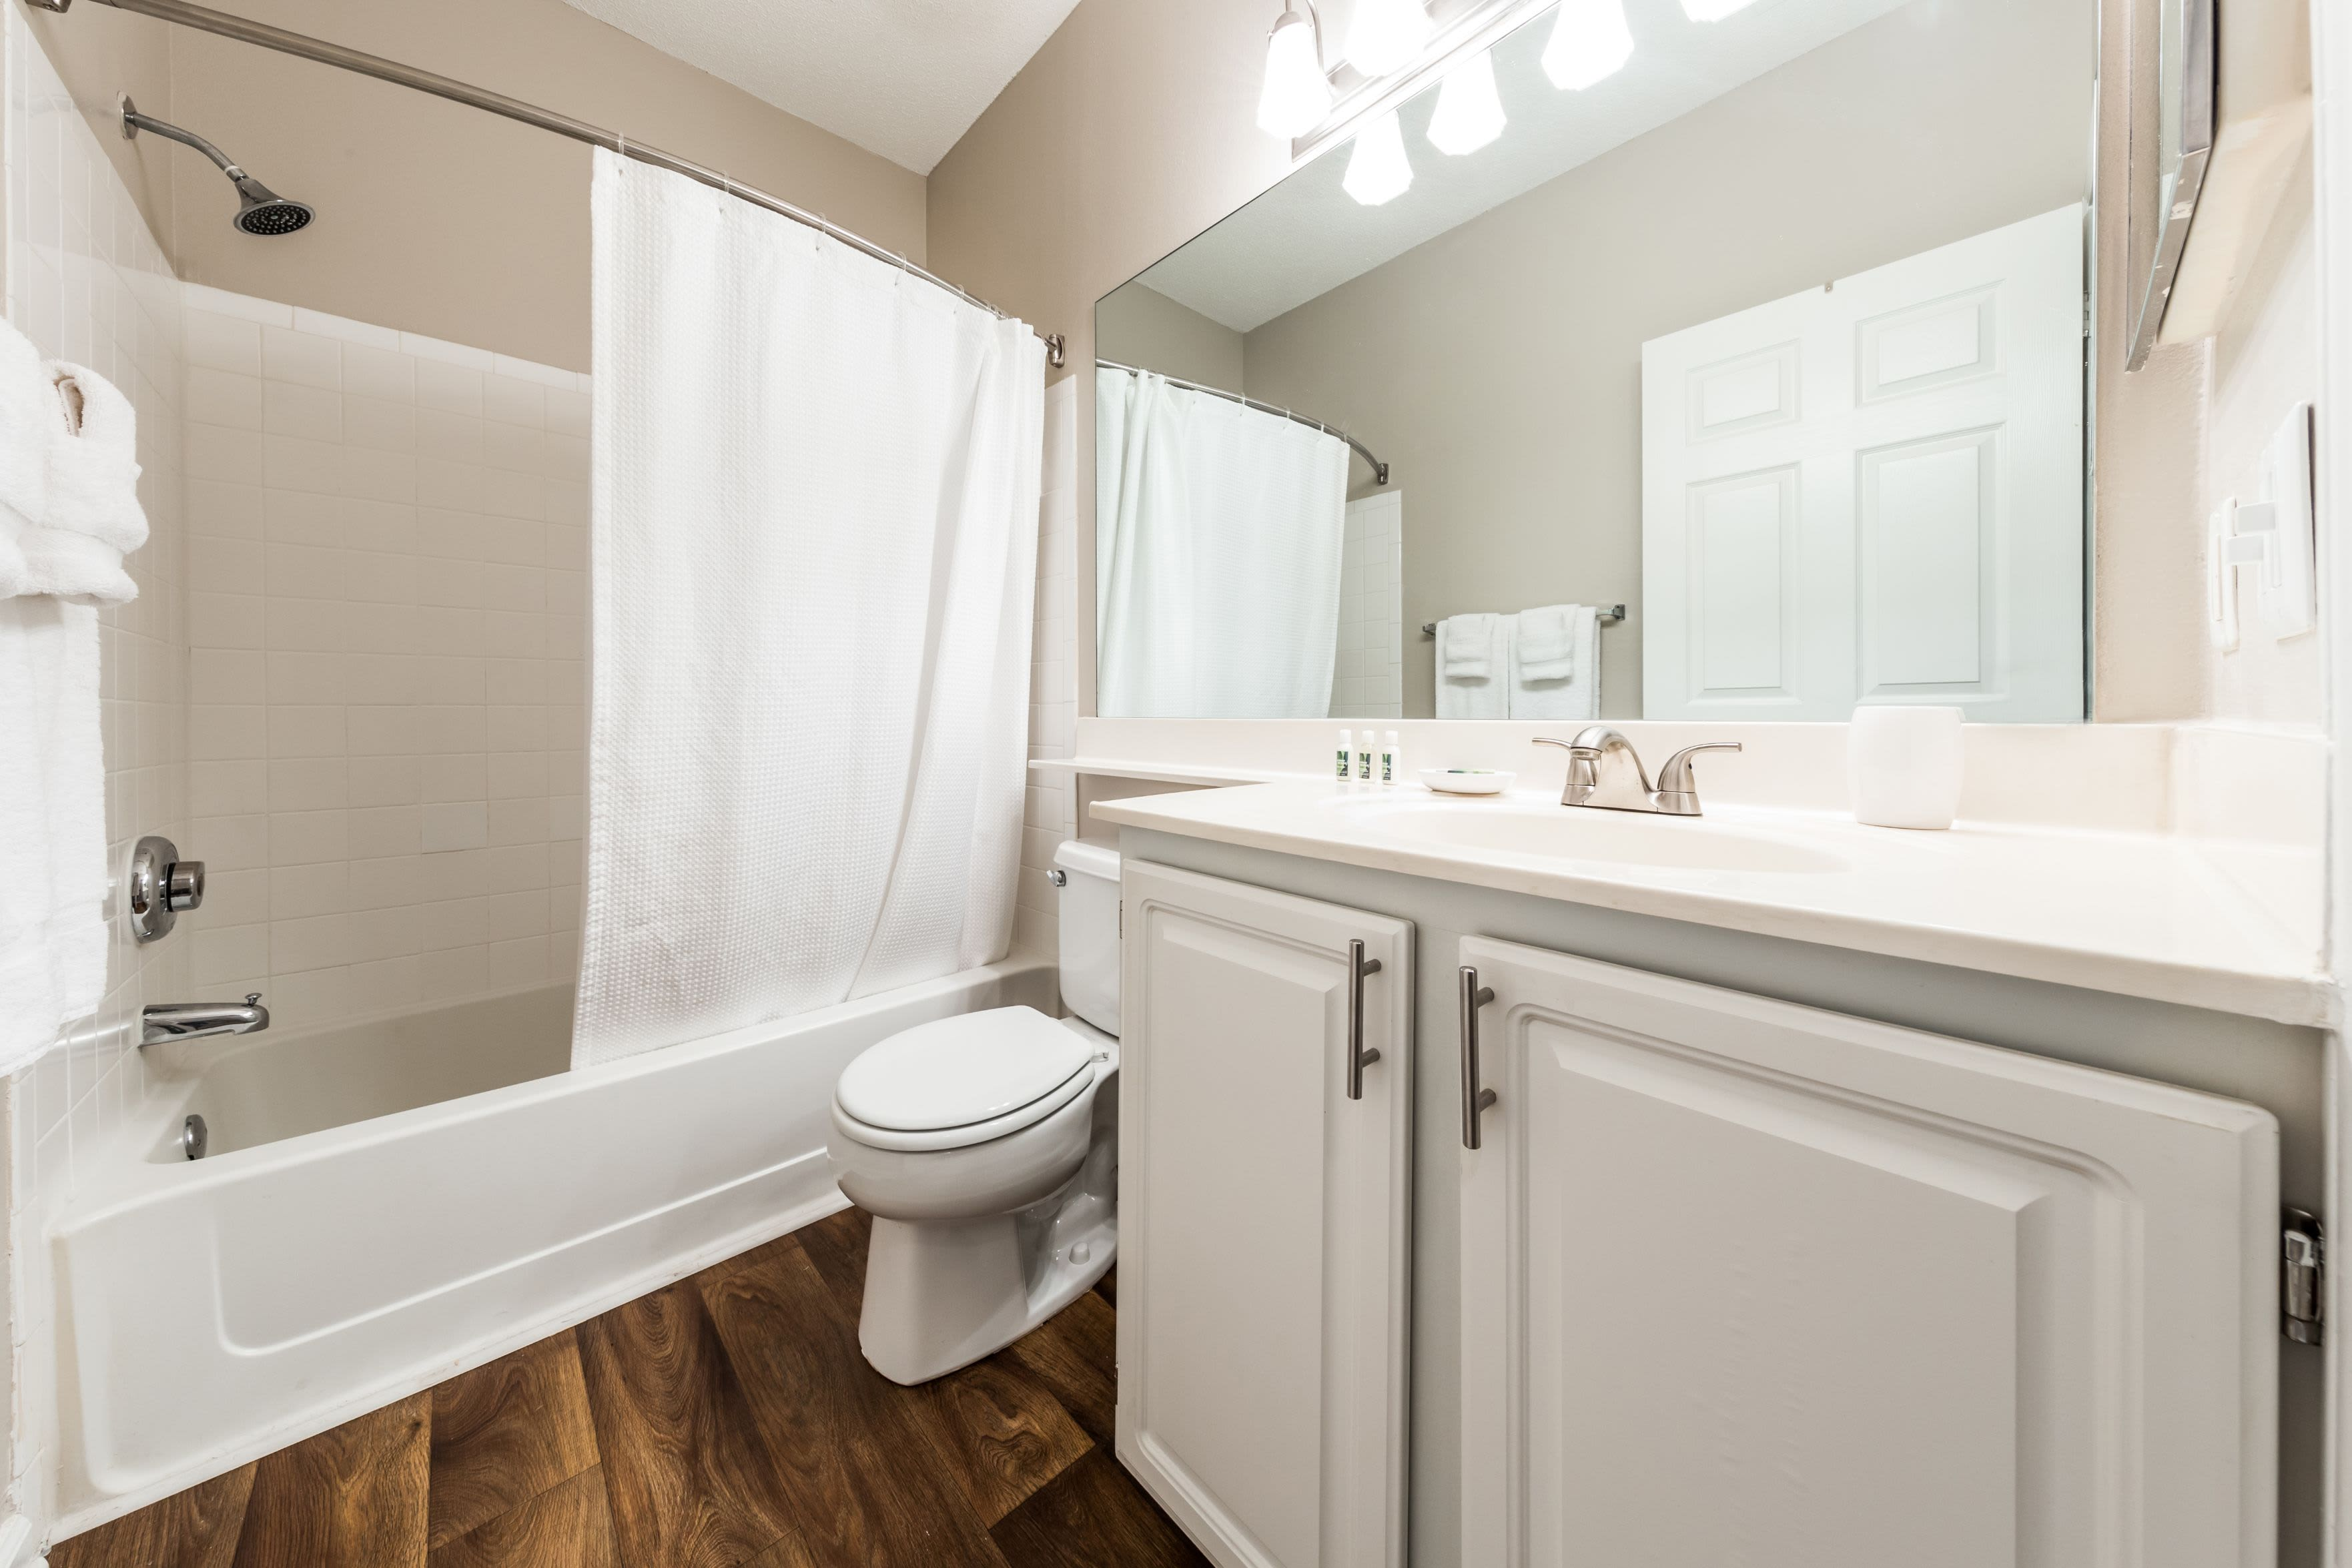 Bathroom with white cabinets and counters at The Preserve at Ballantyne Commons in Charlotte, North Carolina